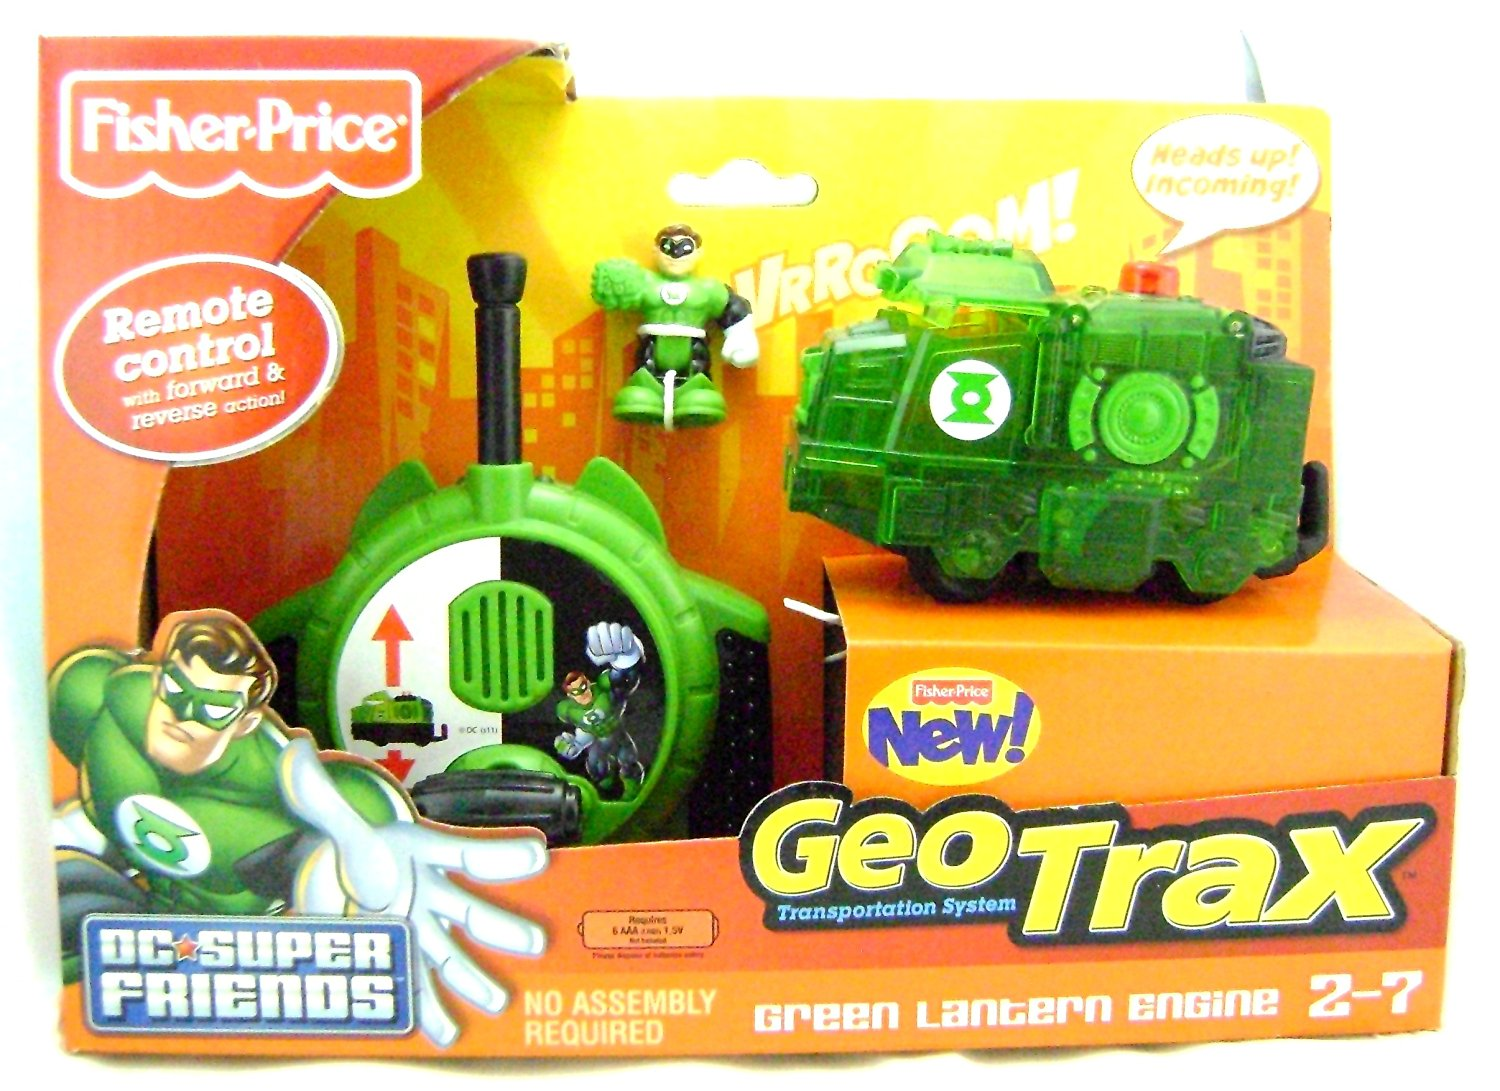 Fisher-Price GeoTrax DC Super Friends Turbo Remote Control Vehicle - Green Lantern Engine